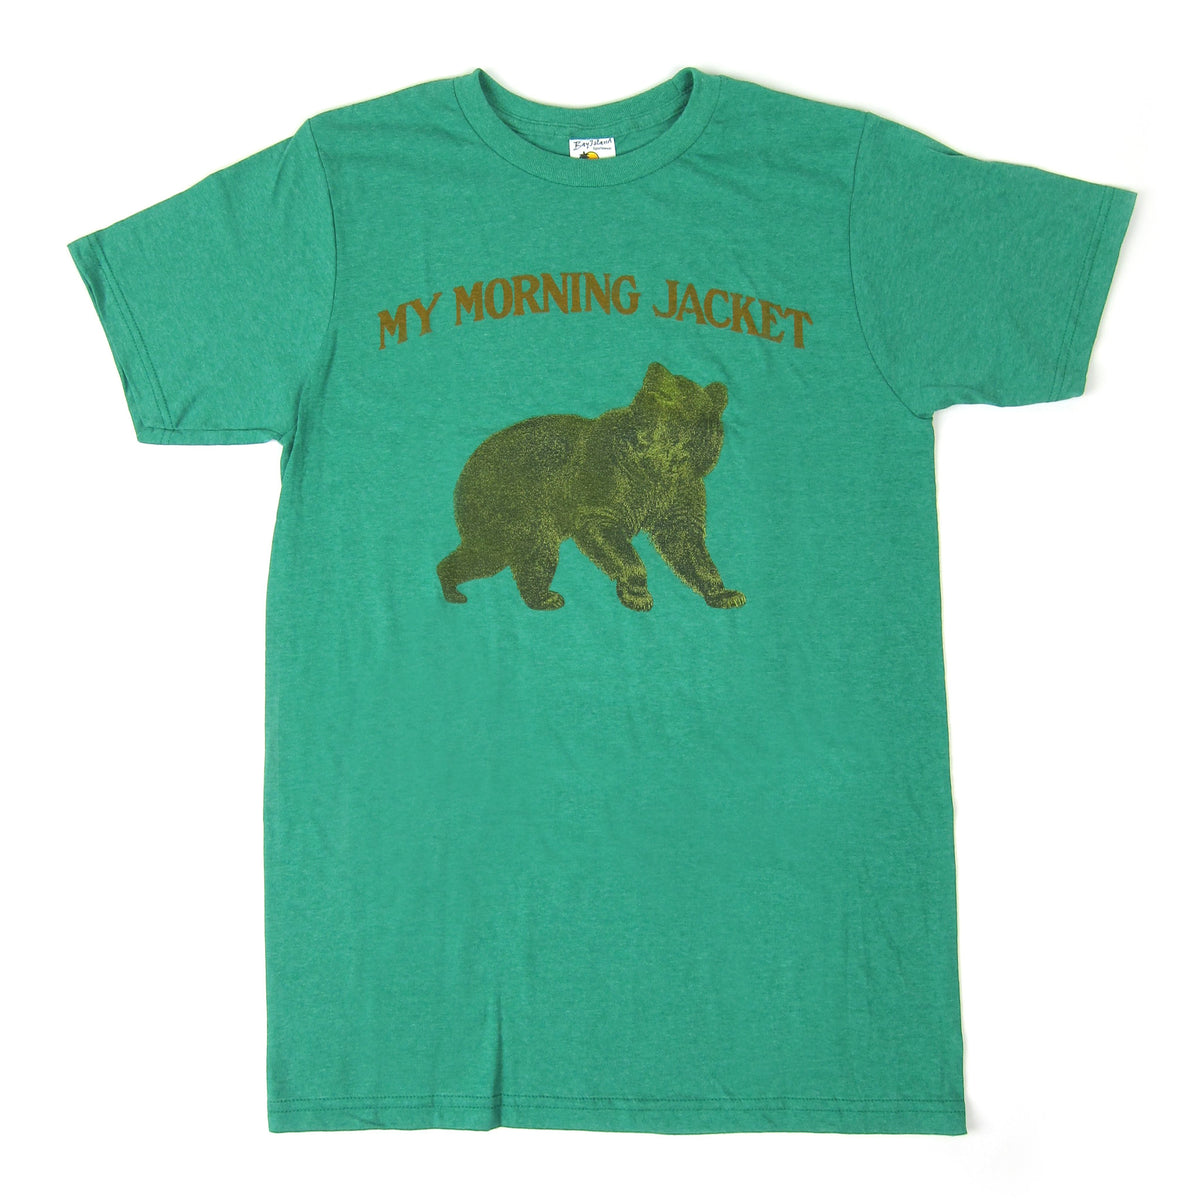 My Morning Jacket: Grizzly Shirt - Green